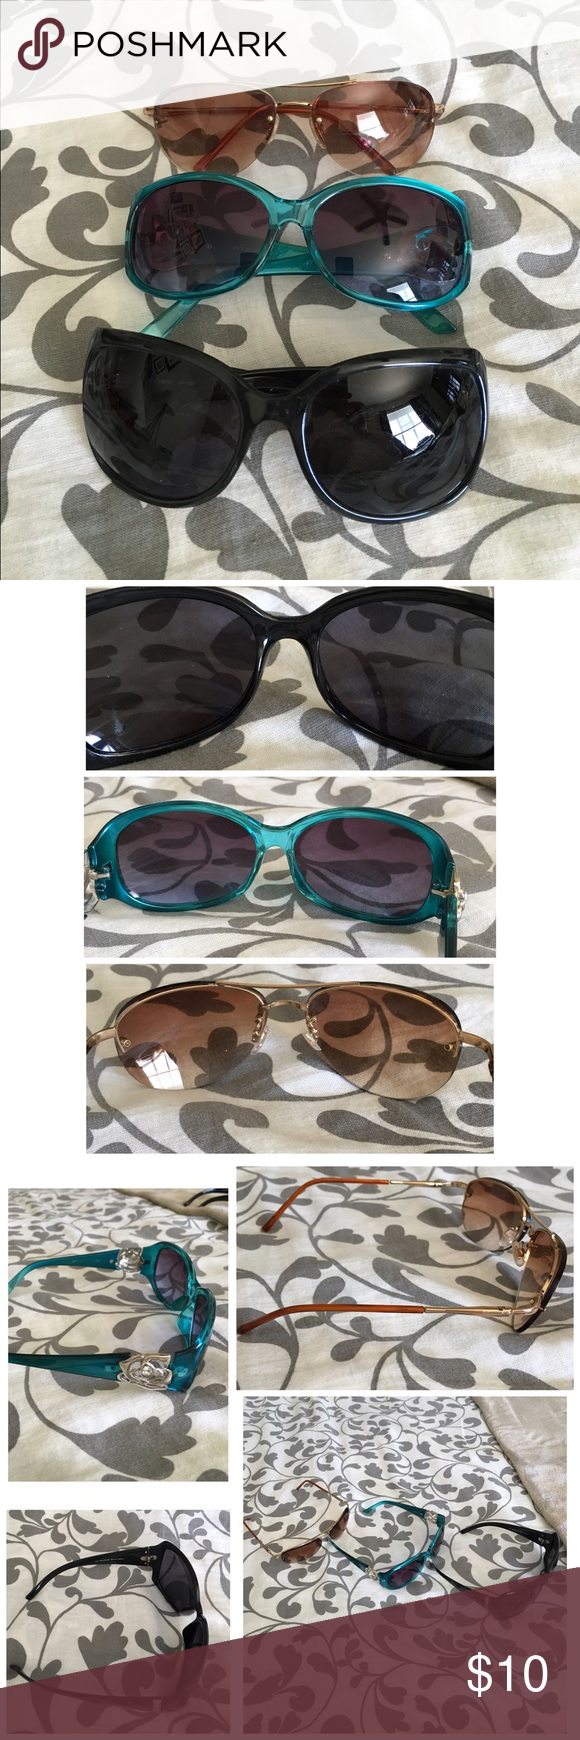 Bundle of 3 sunglasses- all pre-loved. Light scratching on black pair, all gently worn.                                                                GENTLY WORN,could have slight wear/ staining I didn't catch.Please see all pictures.   PLEASE, REASONABLE OFFERS ONLY! - If its $10 or under, I WILL NOT accept offers. -I do not model anything; everything looks different on everyone and I don't wasn't too Jade that. I will put the item on a dress form or find factory pics and provide…